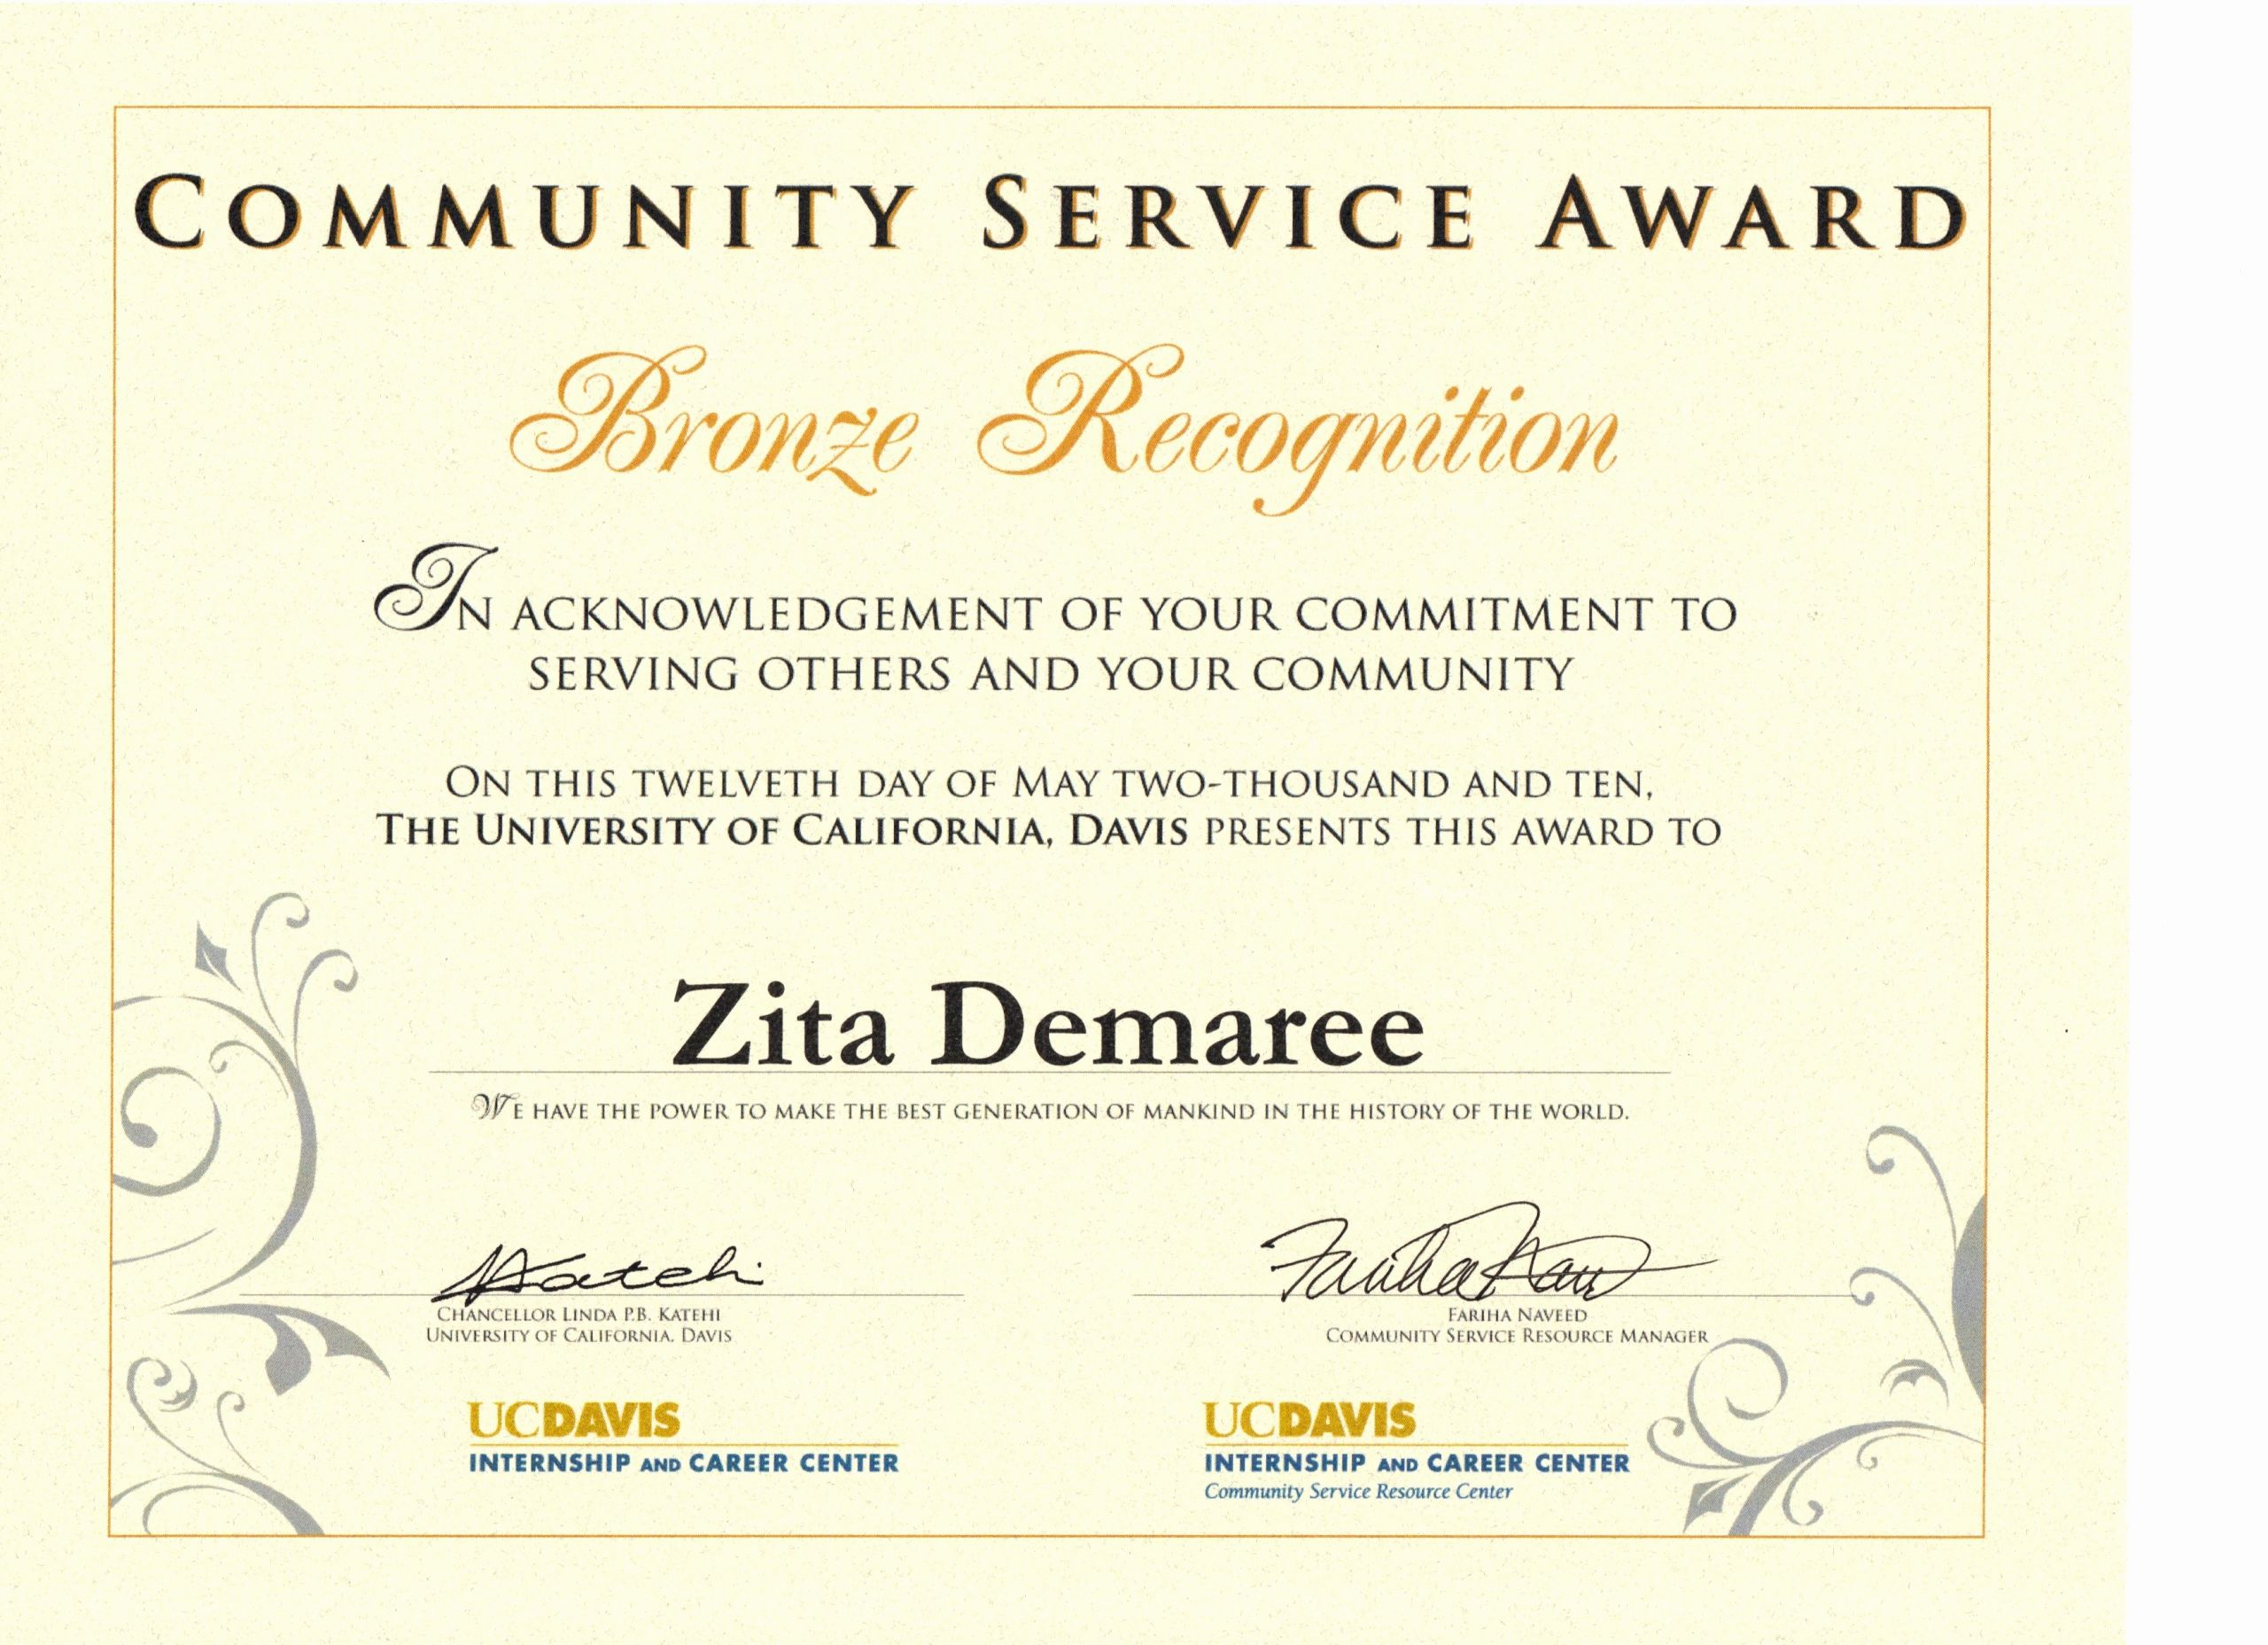 Service Award Certificate Template Beautiful Freemium Templates the Best Printable Blogs